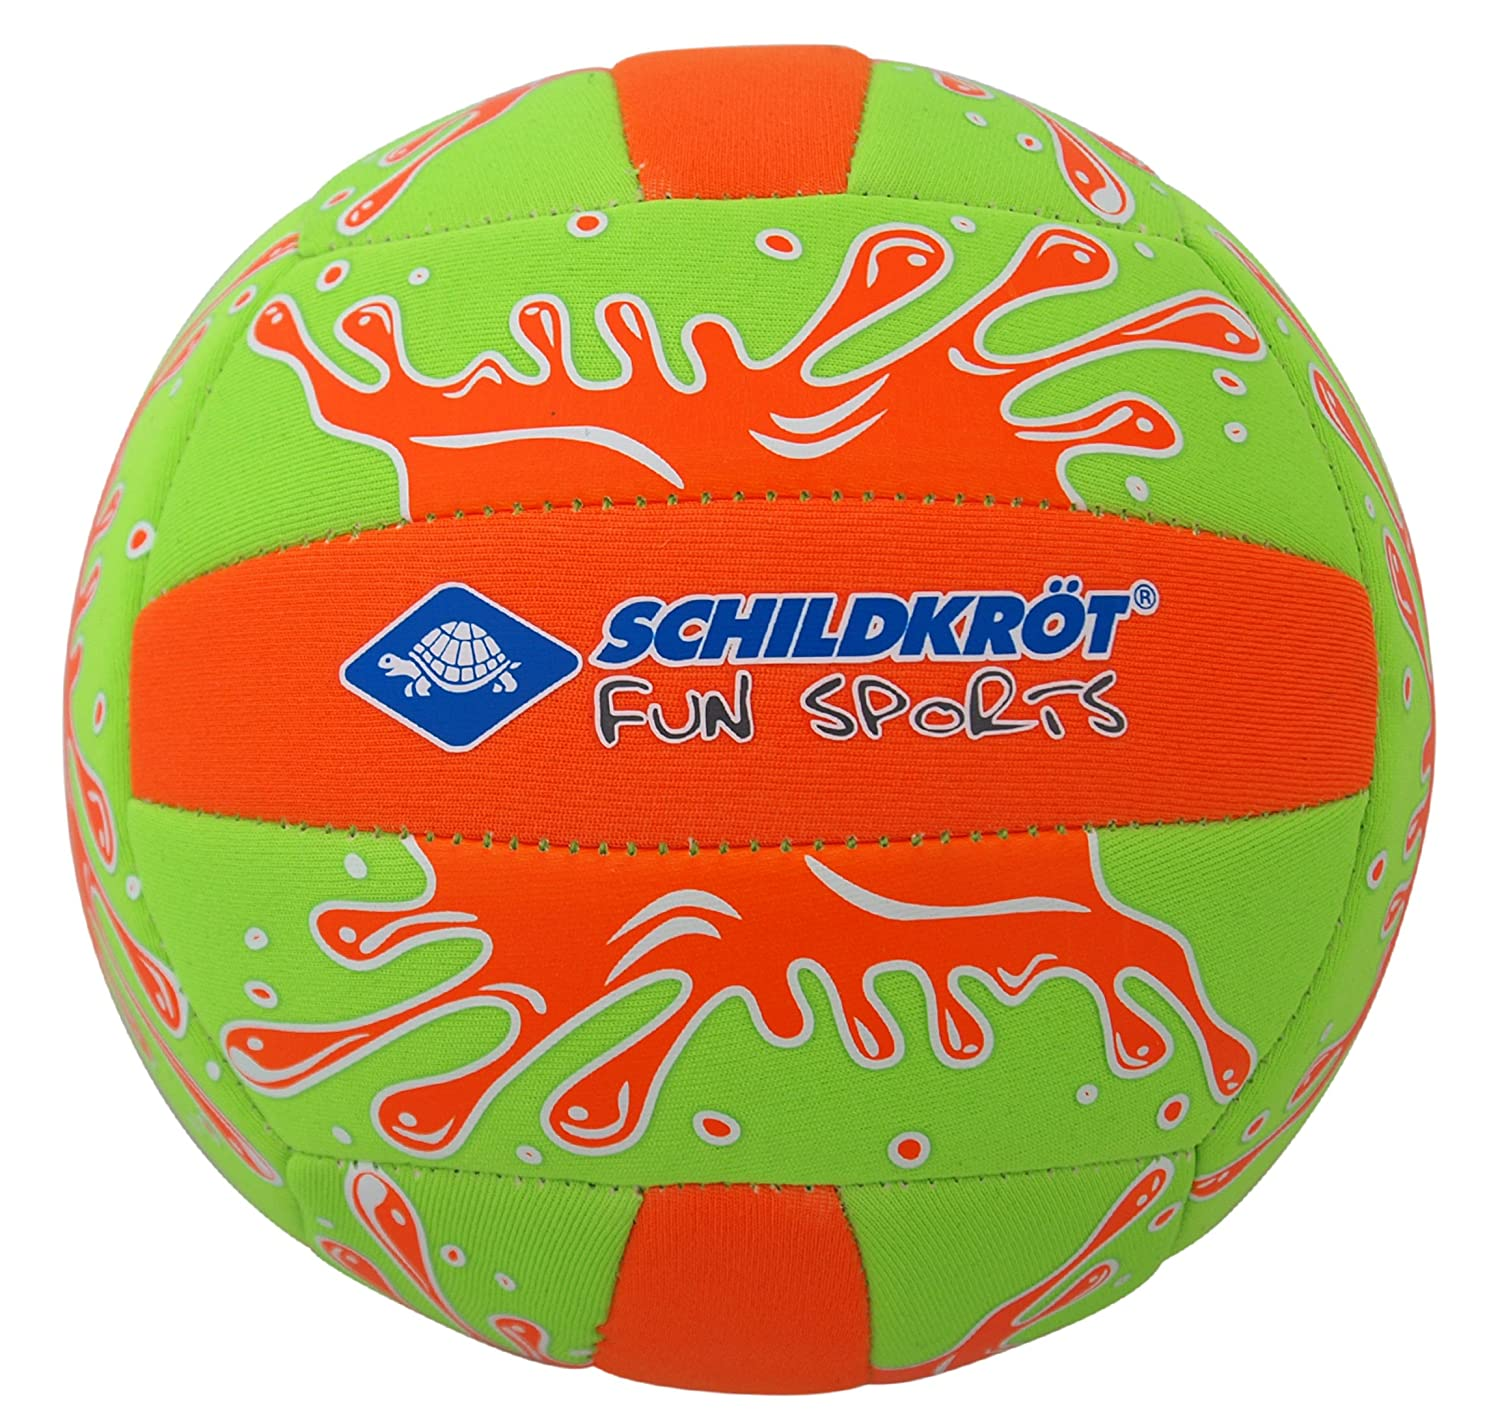 Schildkröt Fun Sports Mini Balle de volley de plage Taille 2 Multicolore 970174